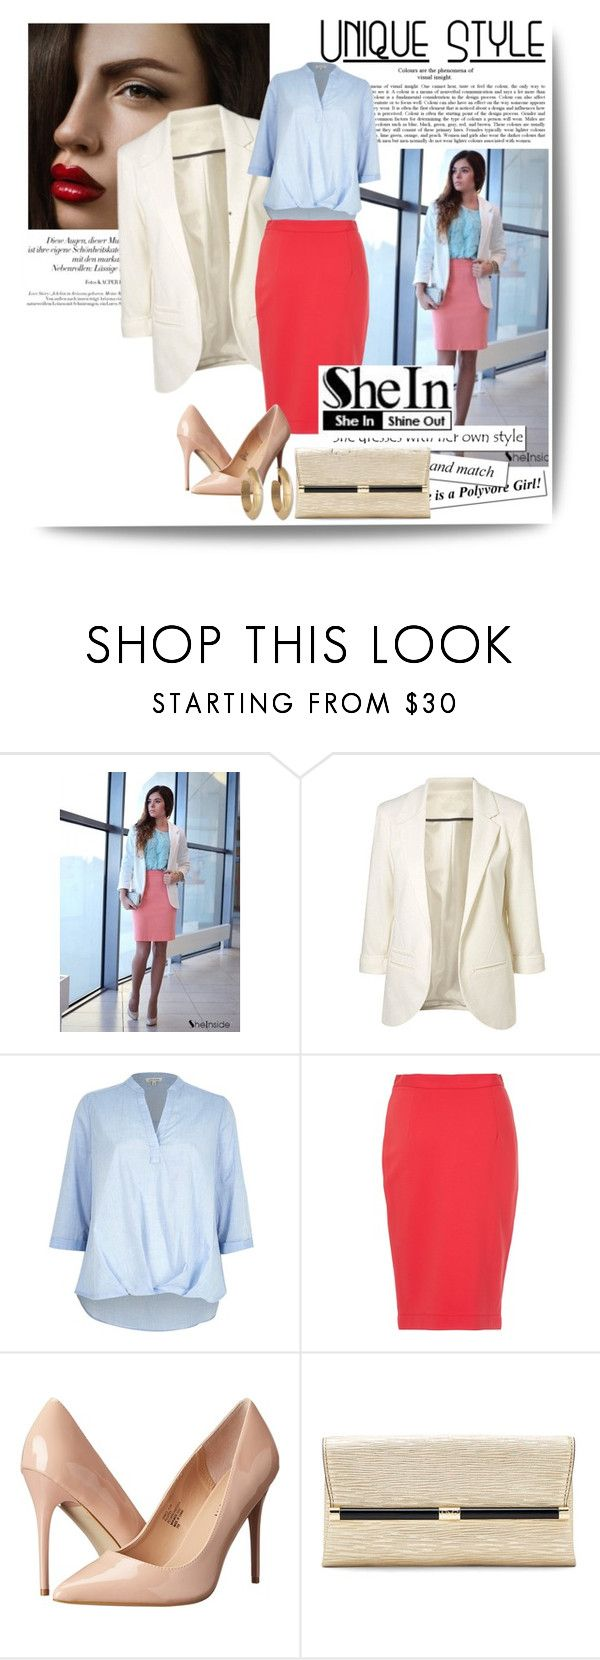 """""""Sleeves Blazer Shein"""" by dzena-05 ❤ liked on Polyvore featuring River Island, French Connection, Madden Girl, Diane Von Furstenberg and House of Harlow 1960"""